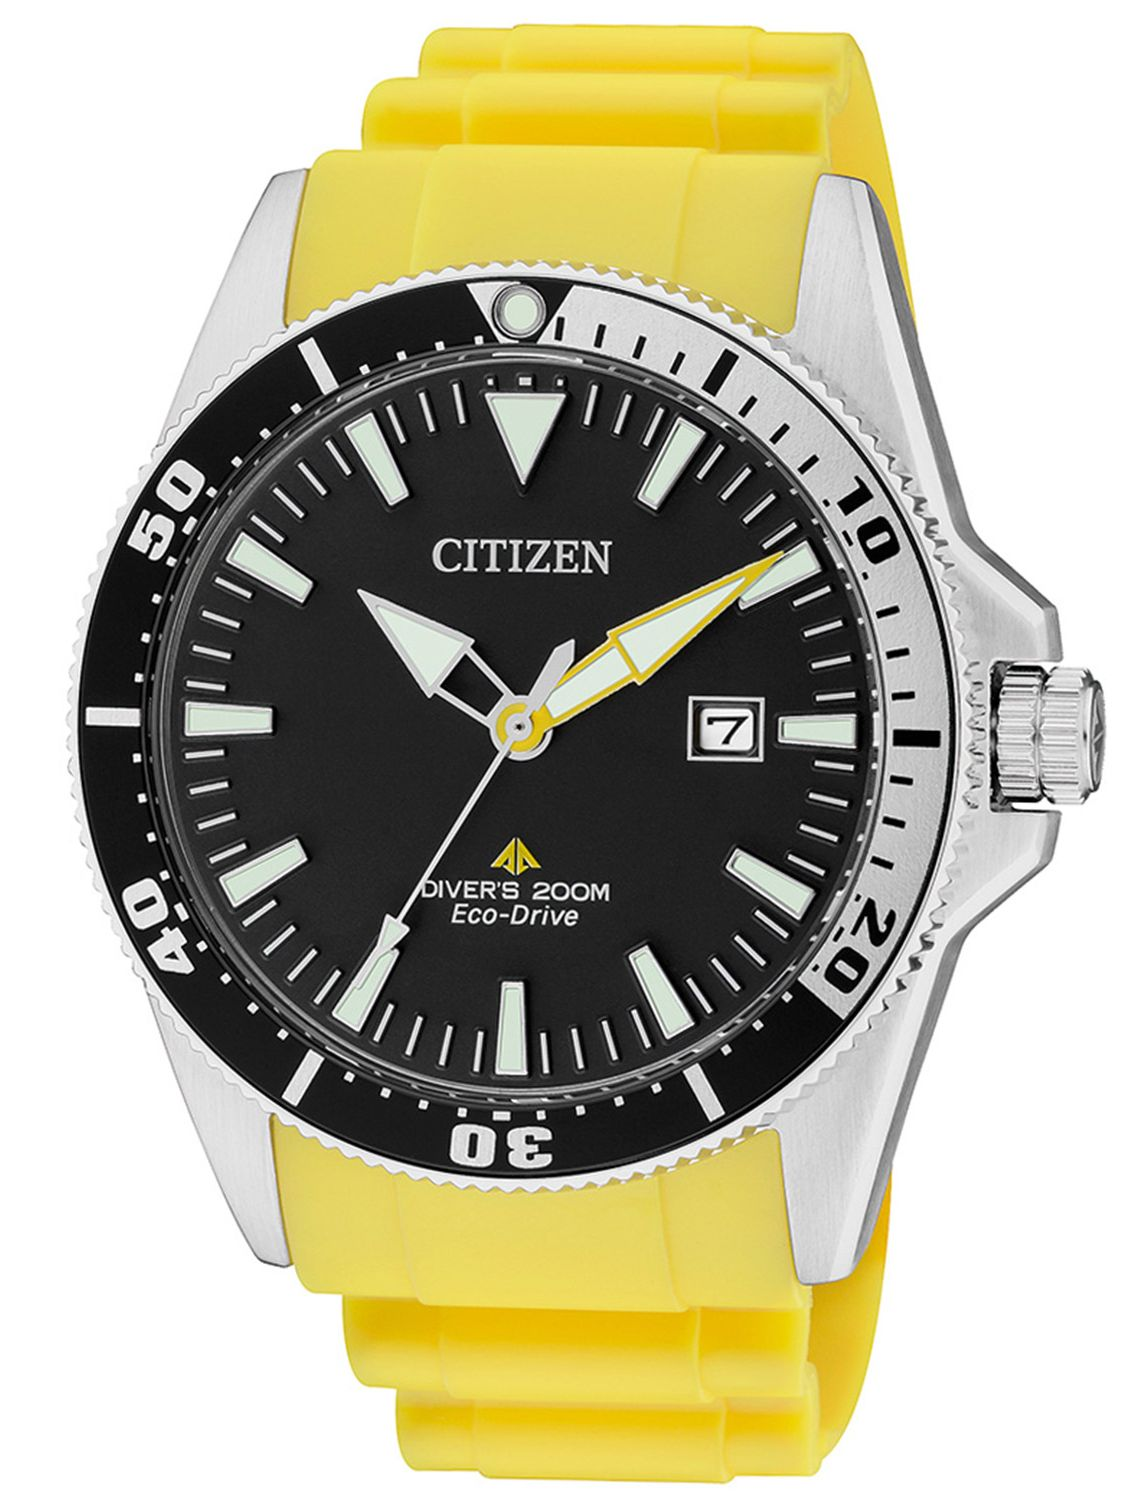 Orologio Citizen Divers Giallo 200 mt BN0100-26E